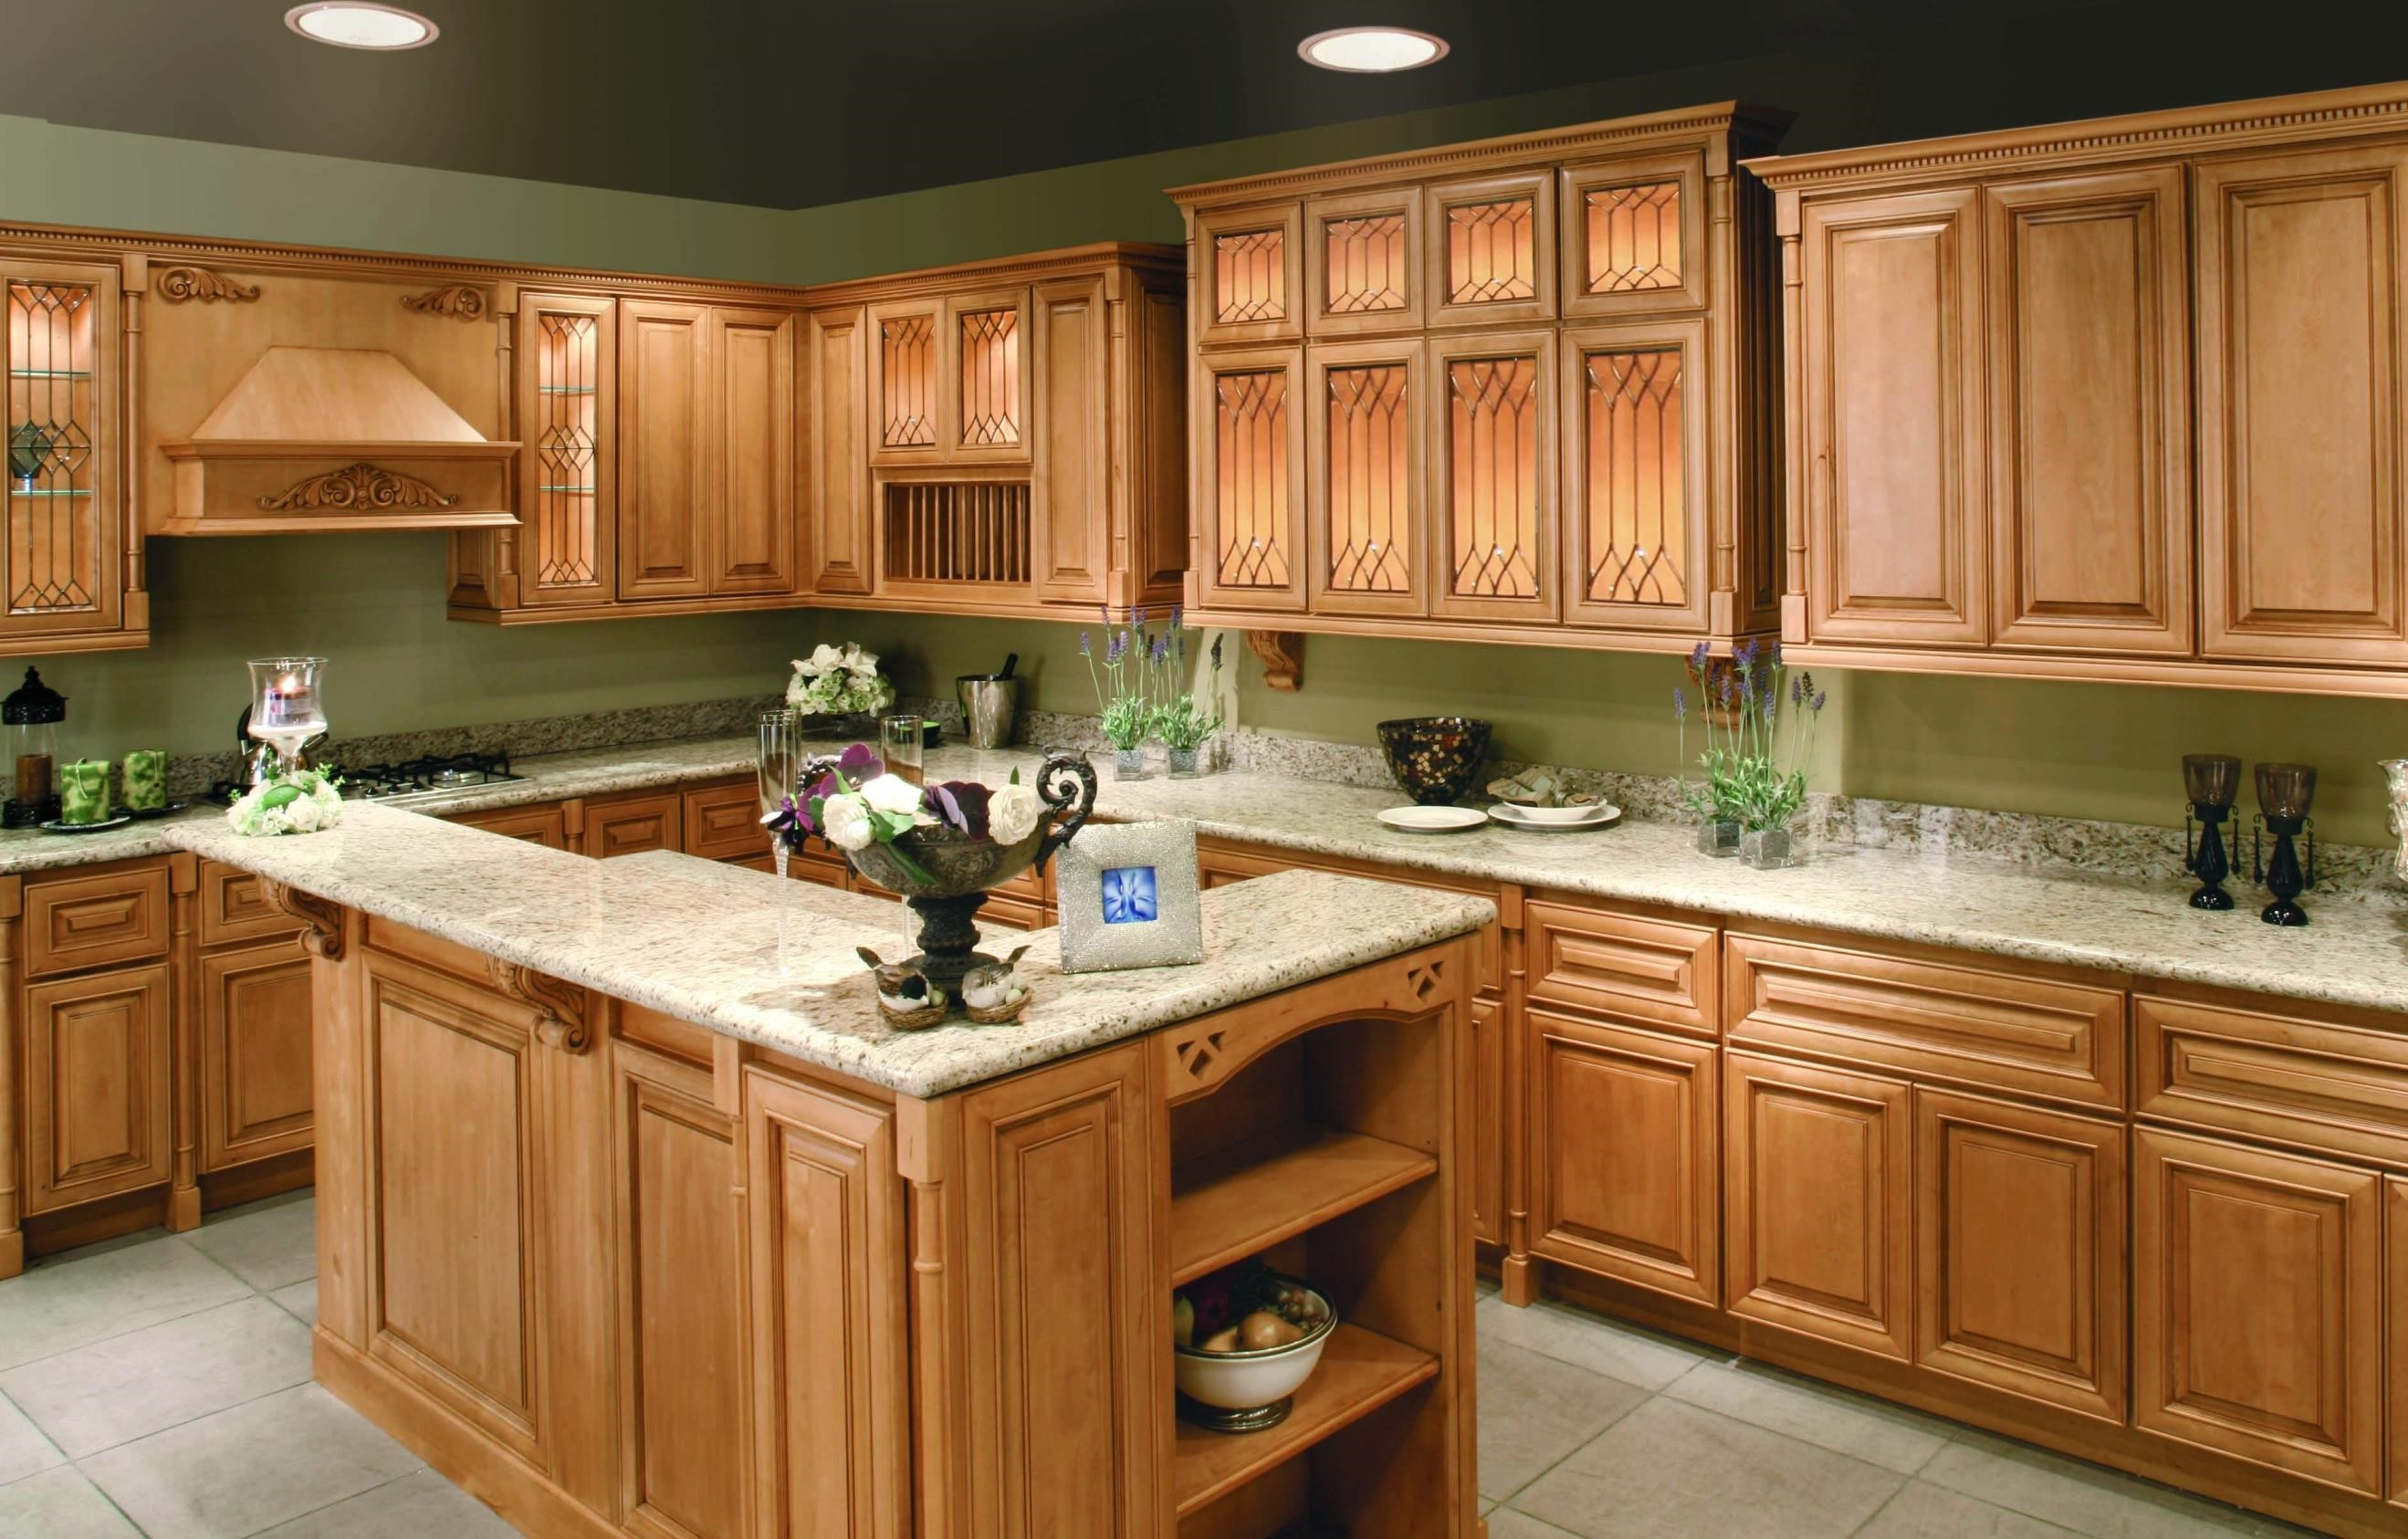 Kitchen Designs With Oak Cabinets And White Appliances